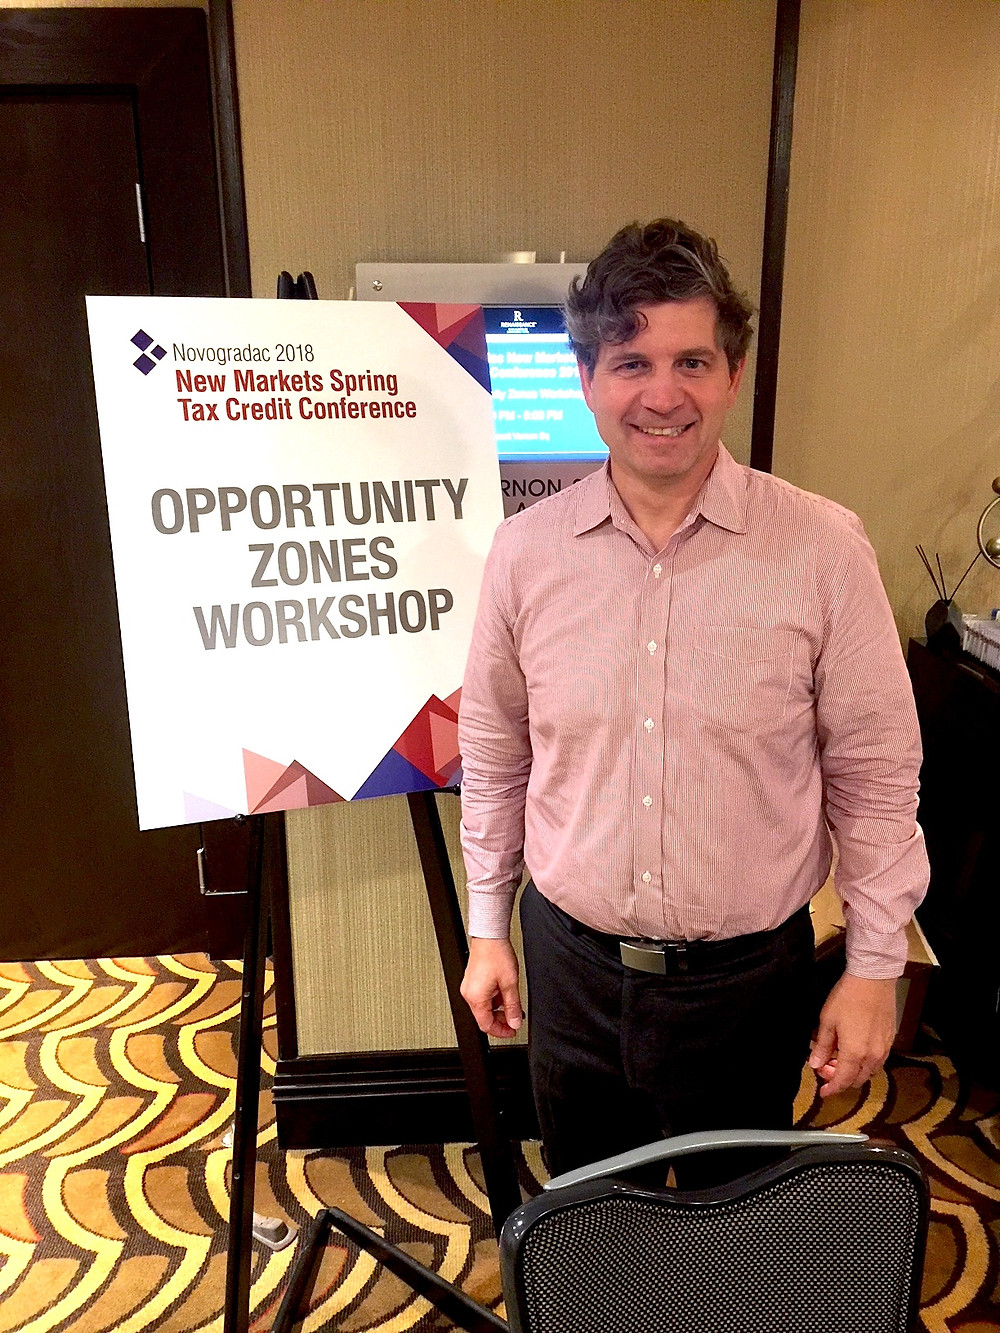 Joey Strength at the Opportunity Zones Workshop at the Novogradac 2018 New Markets Spring Tax Credit Conference